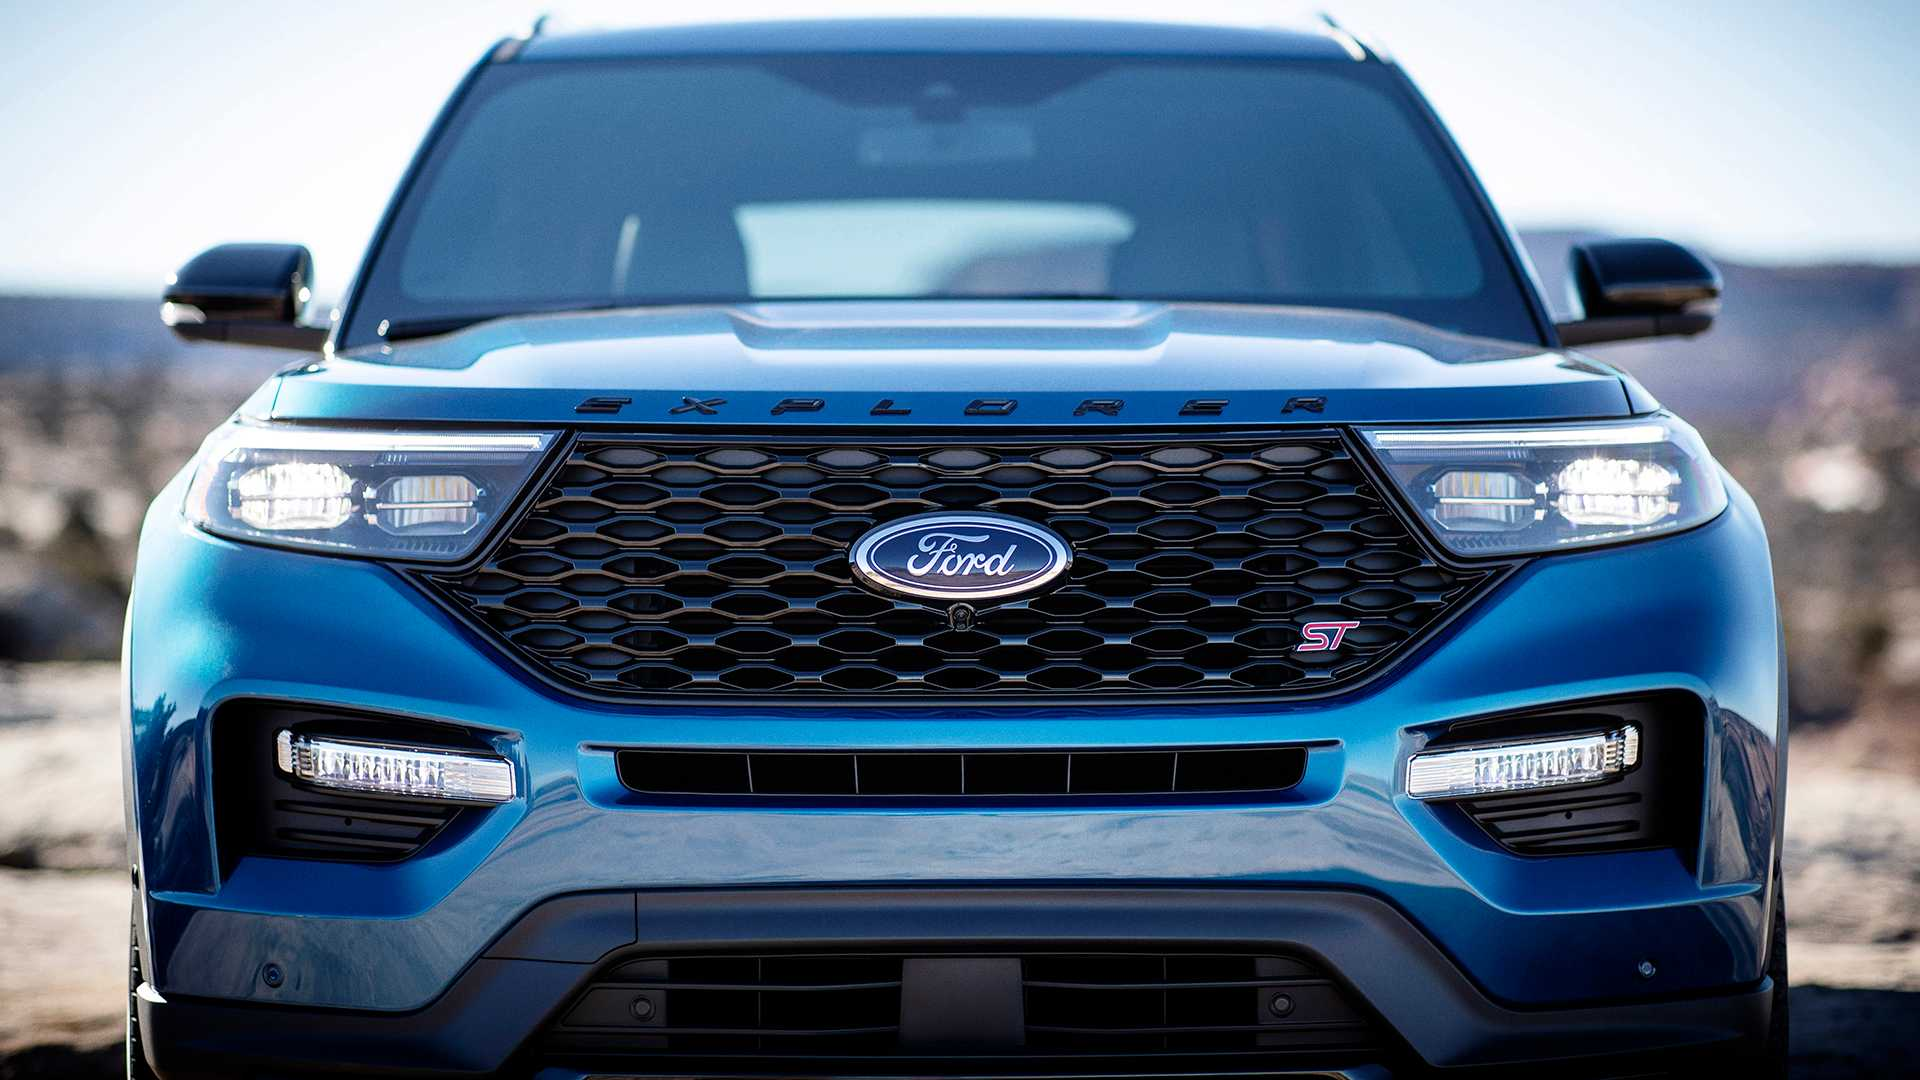 37 Concept of Ford New Explorer 2020 Picture by Ford New Explorer 2020